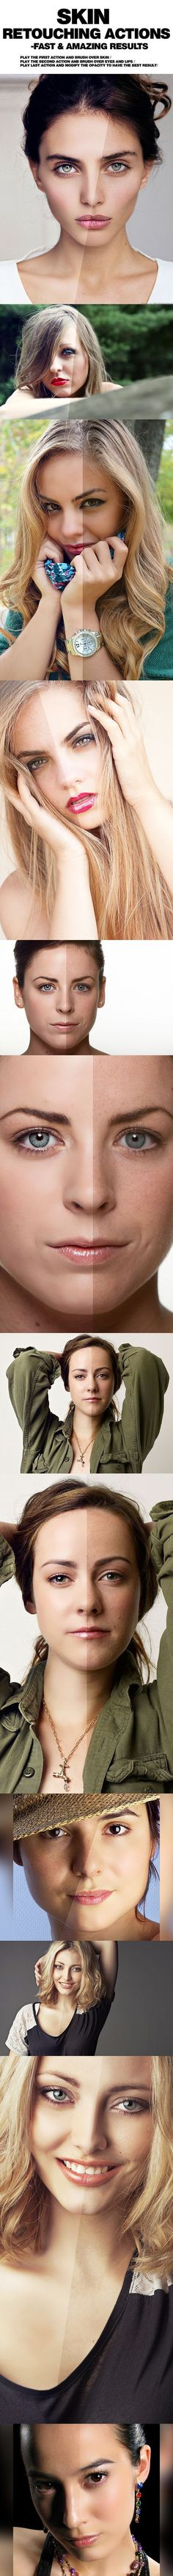 PRO Skin Retouching Photoshop Actions #photoeffect Download:Photoshop tips. Nordic360.